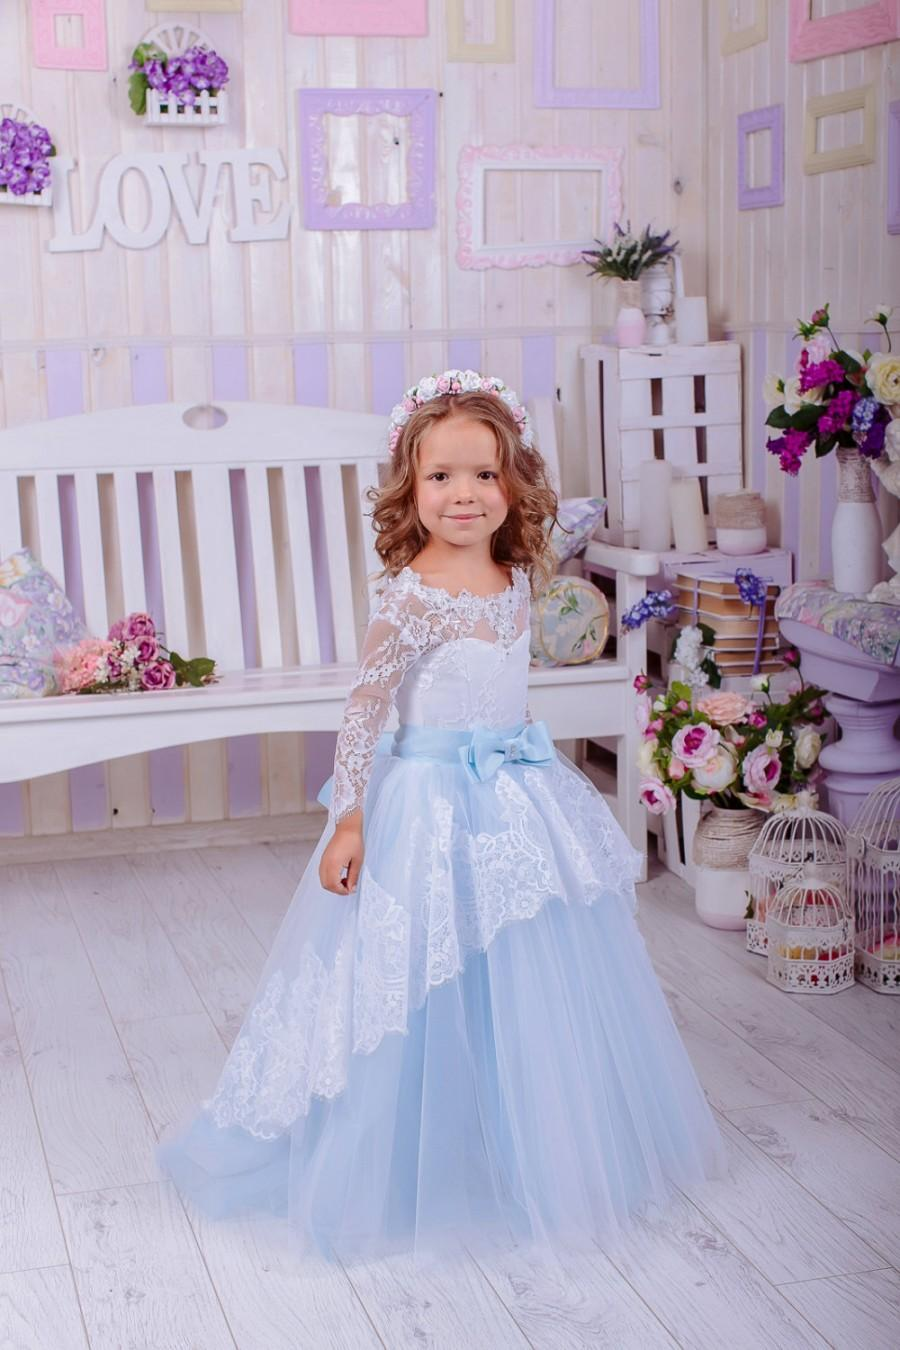 Baby Blue Lace Flower Dress Wedding Party Rustic S Dresses Ivory